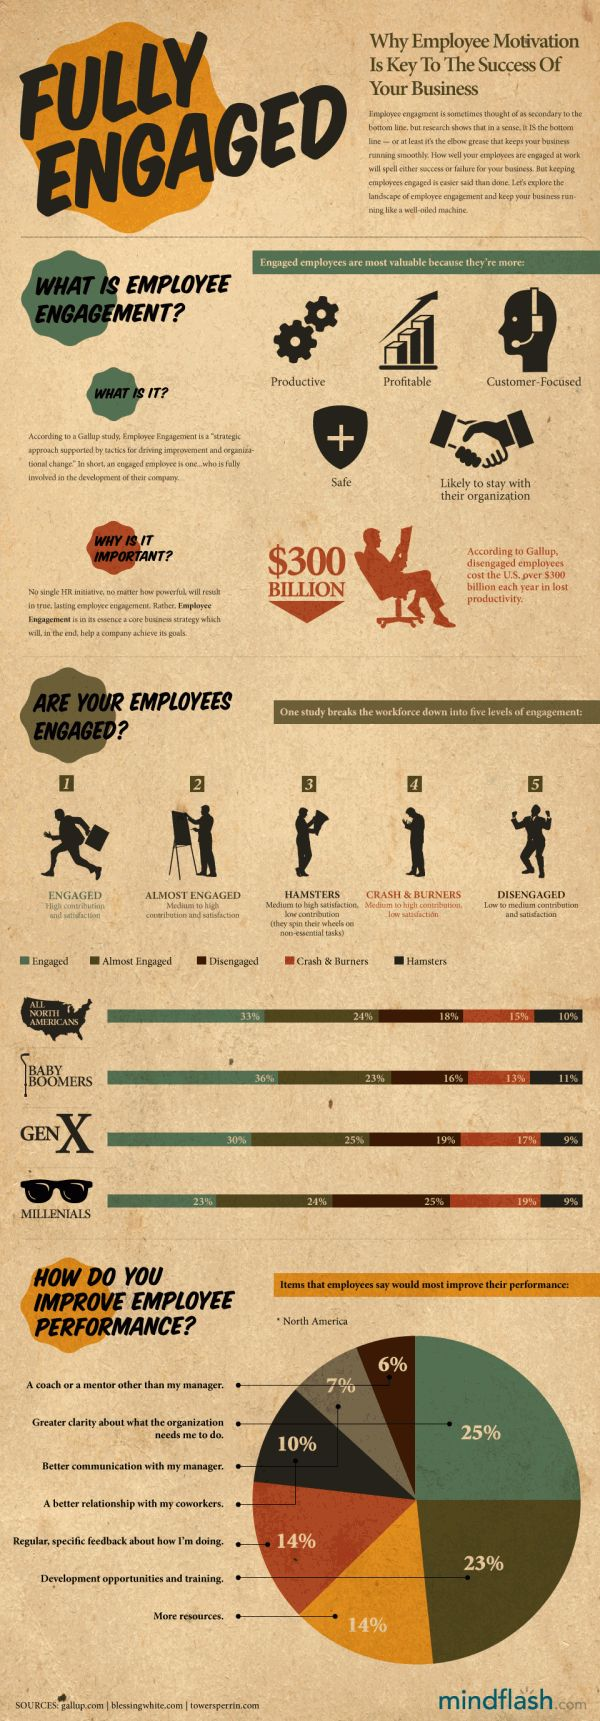 159 best employee engagement infographics images on pinterest keep employees motivated and happy to get them engaged at work ccuart Image collections